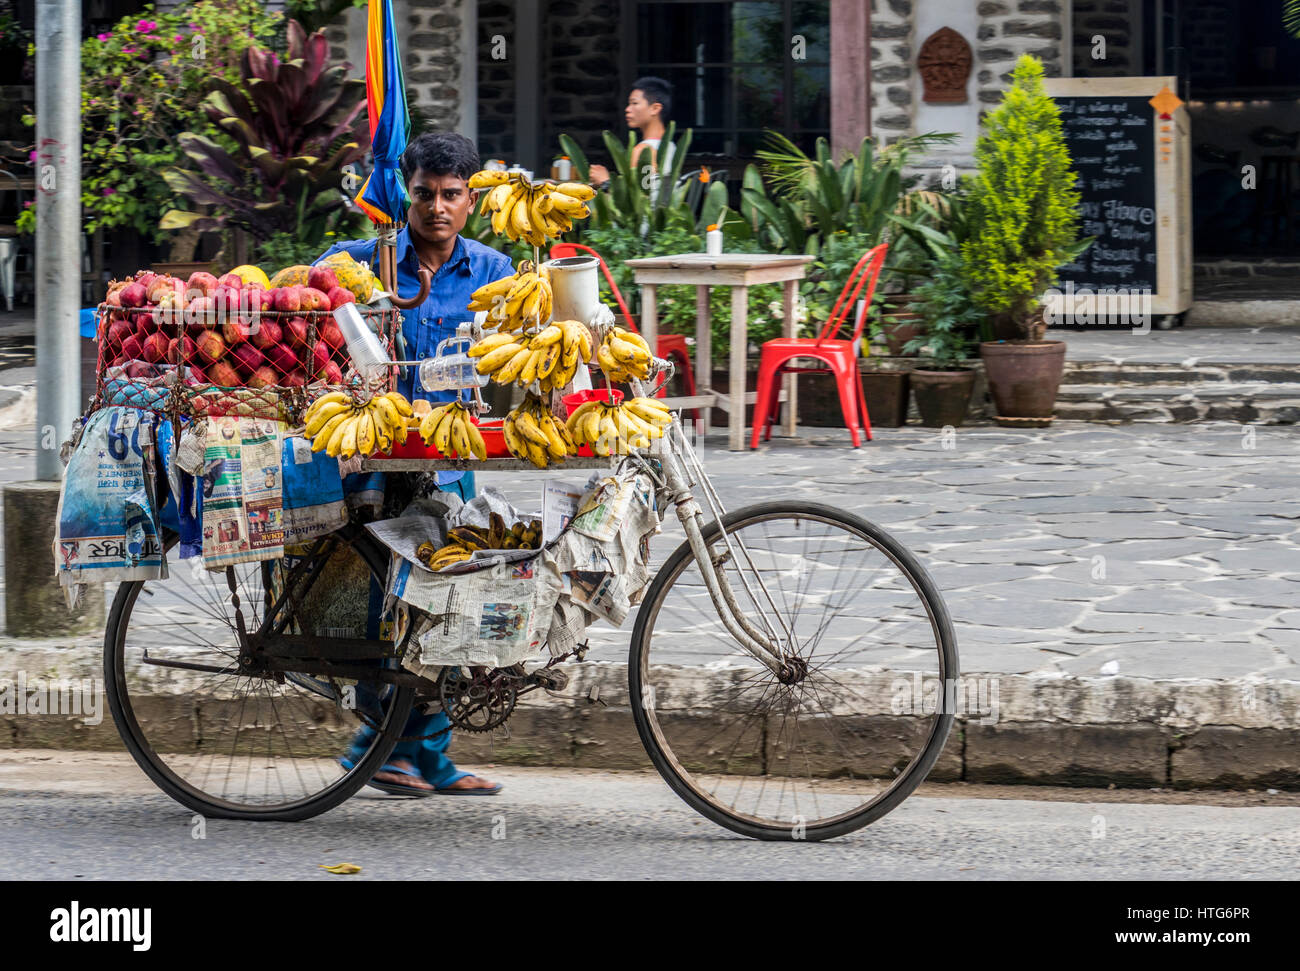 mobile vendor on cycle selling fruit in Pokhara Nepal - Stock Image